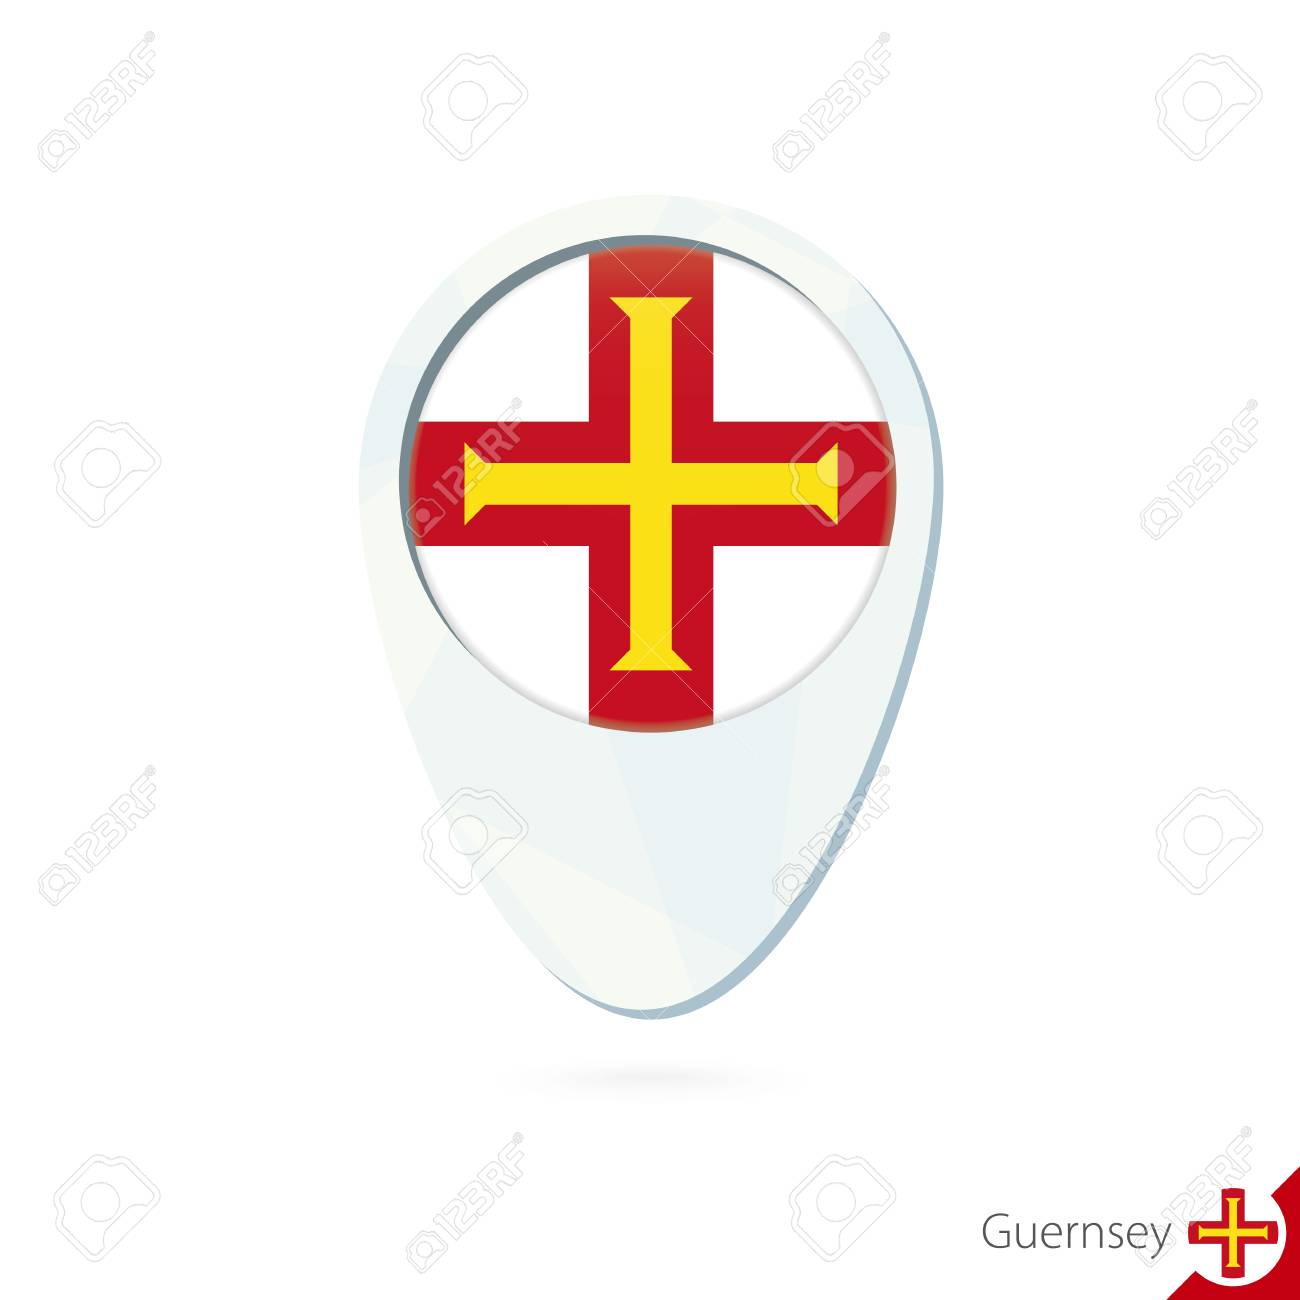 Guernsey Flag Location Map Pin Icon On White Background Vector